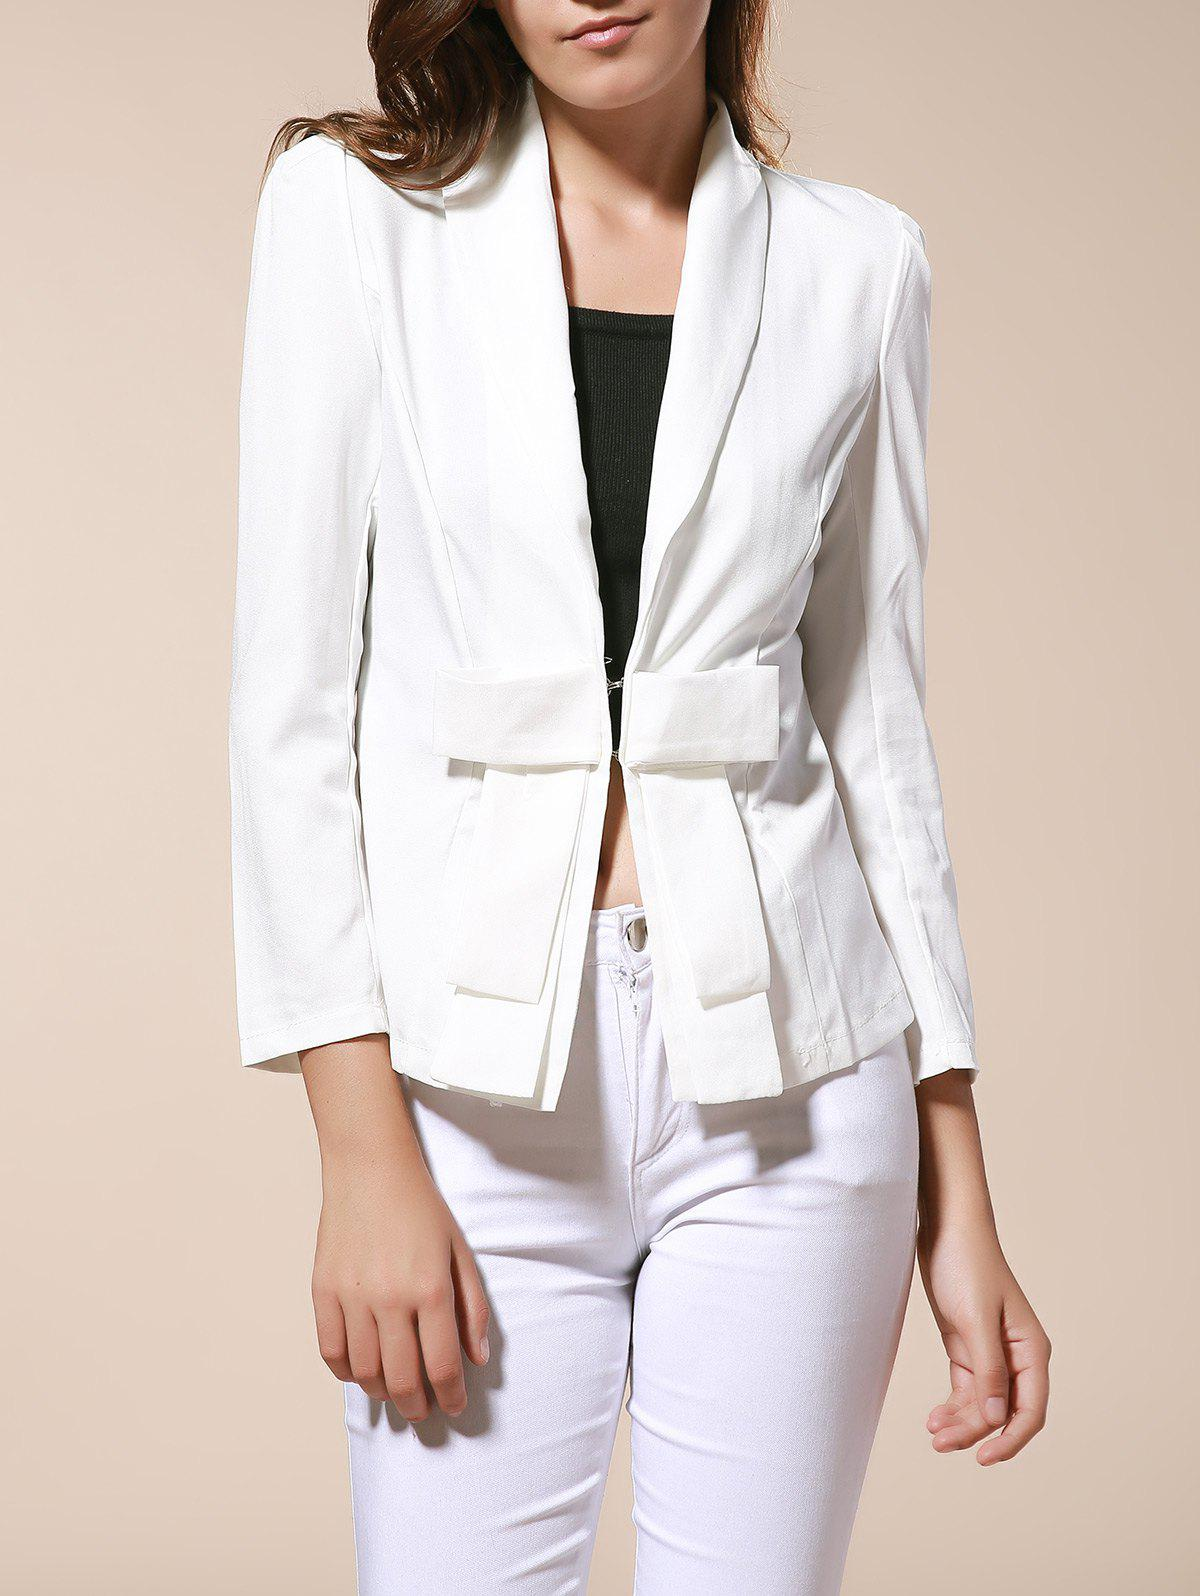 Elegant and Slim Bowknot White Long Sleeves Cotton Blend Fabric Coat For Women